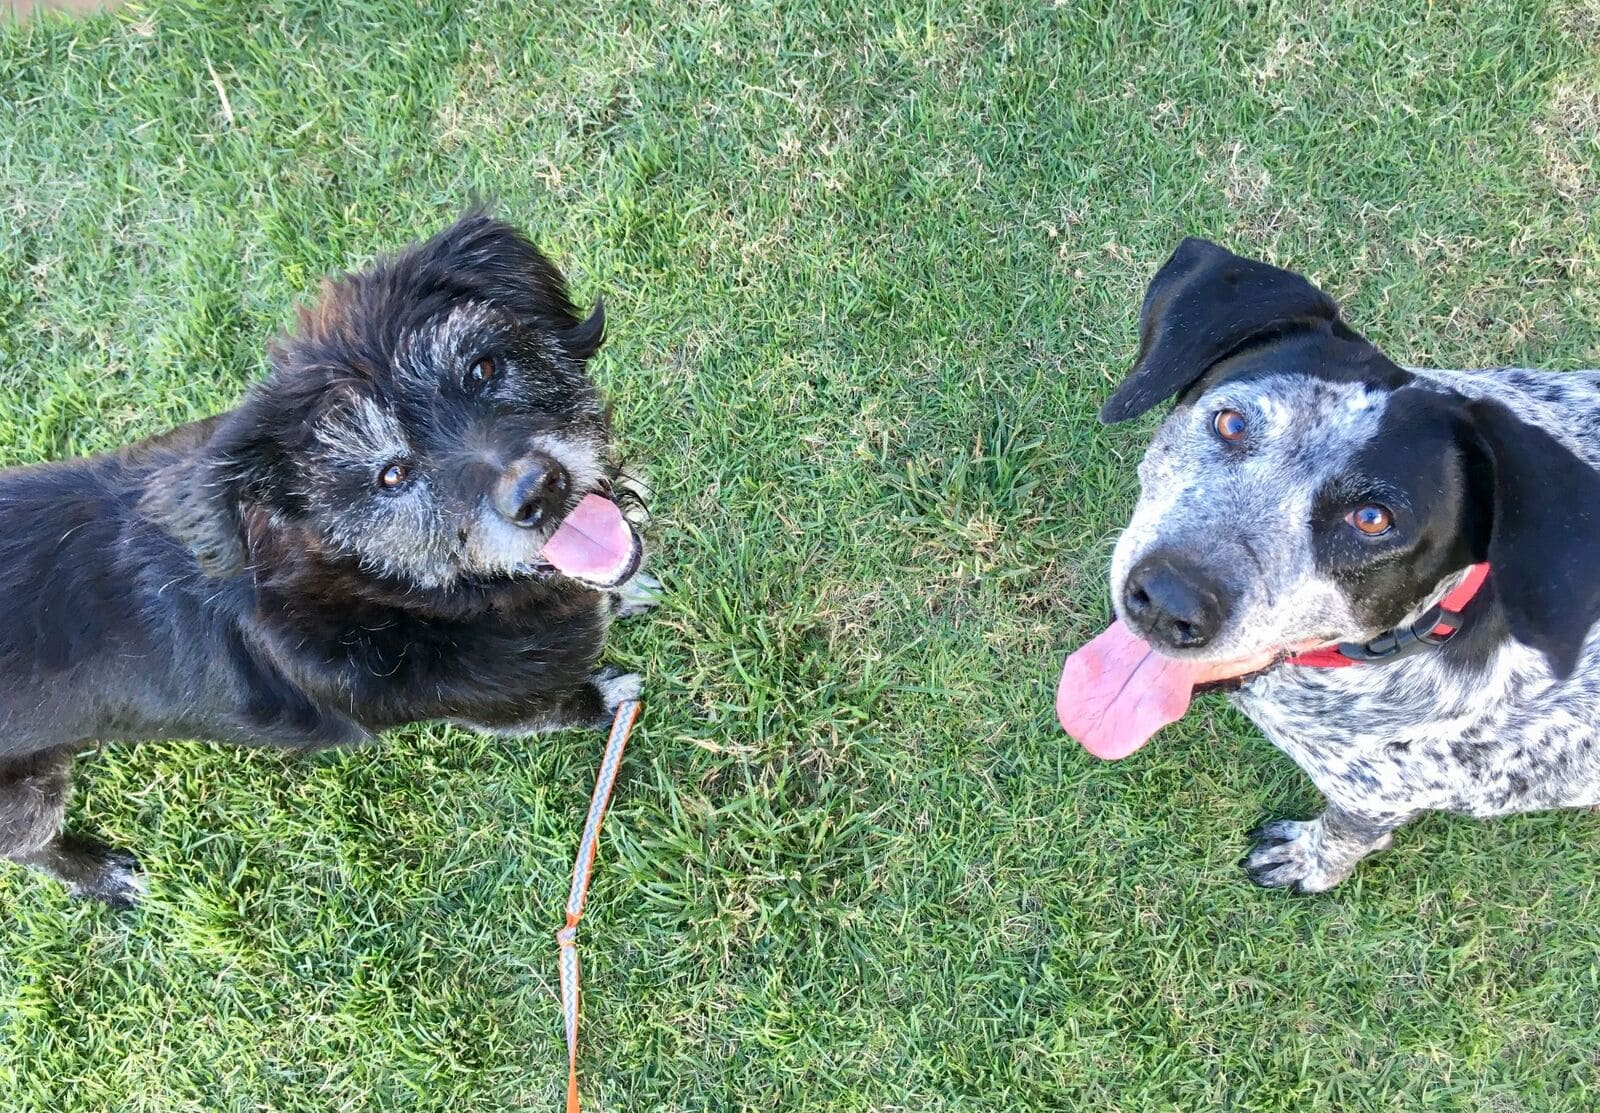 2 dogs smiling looking up